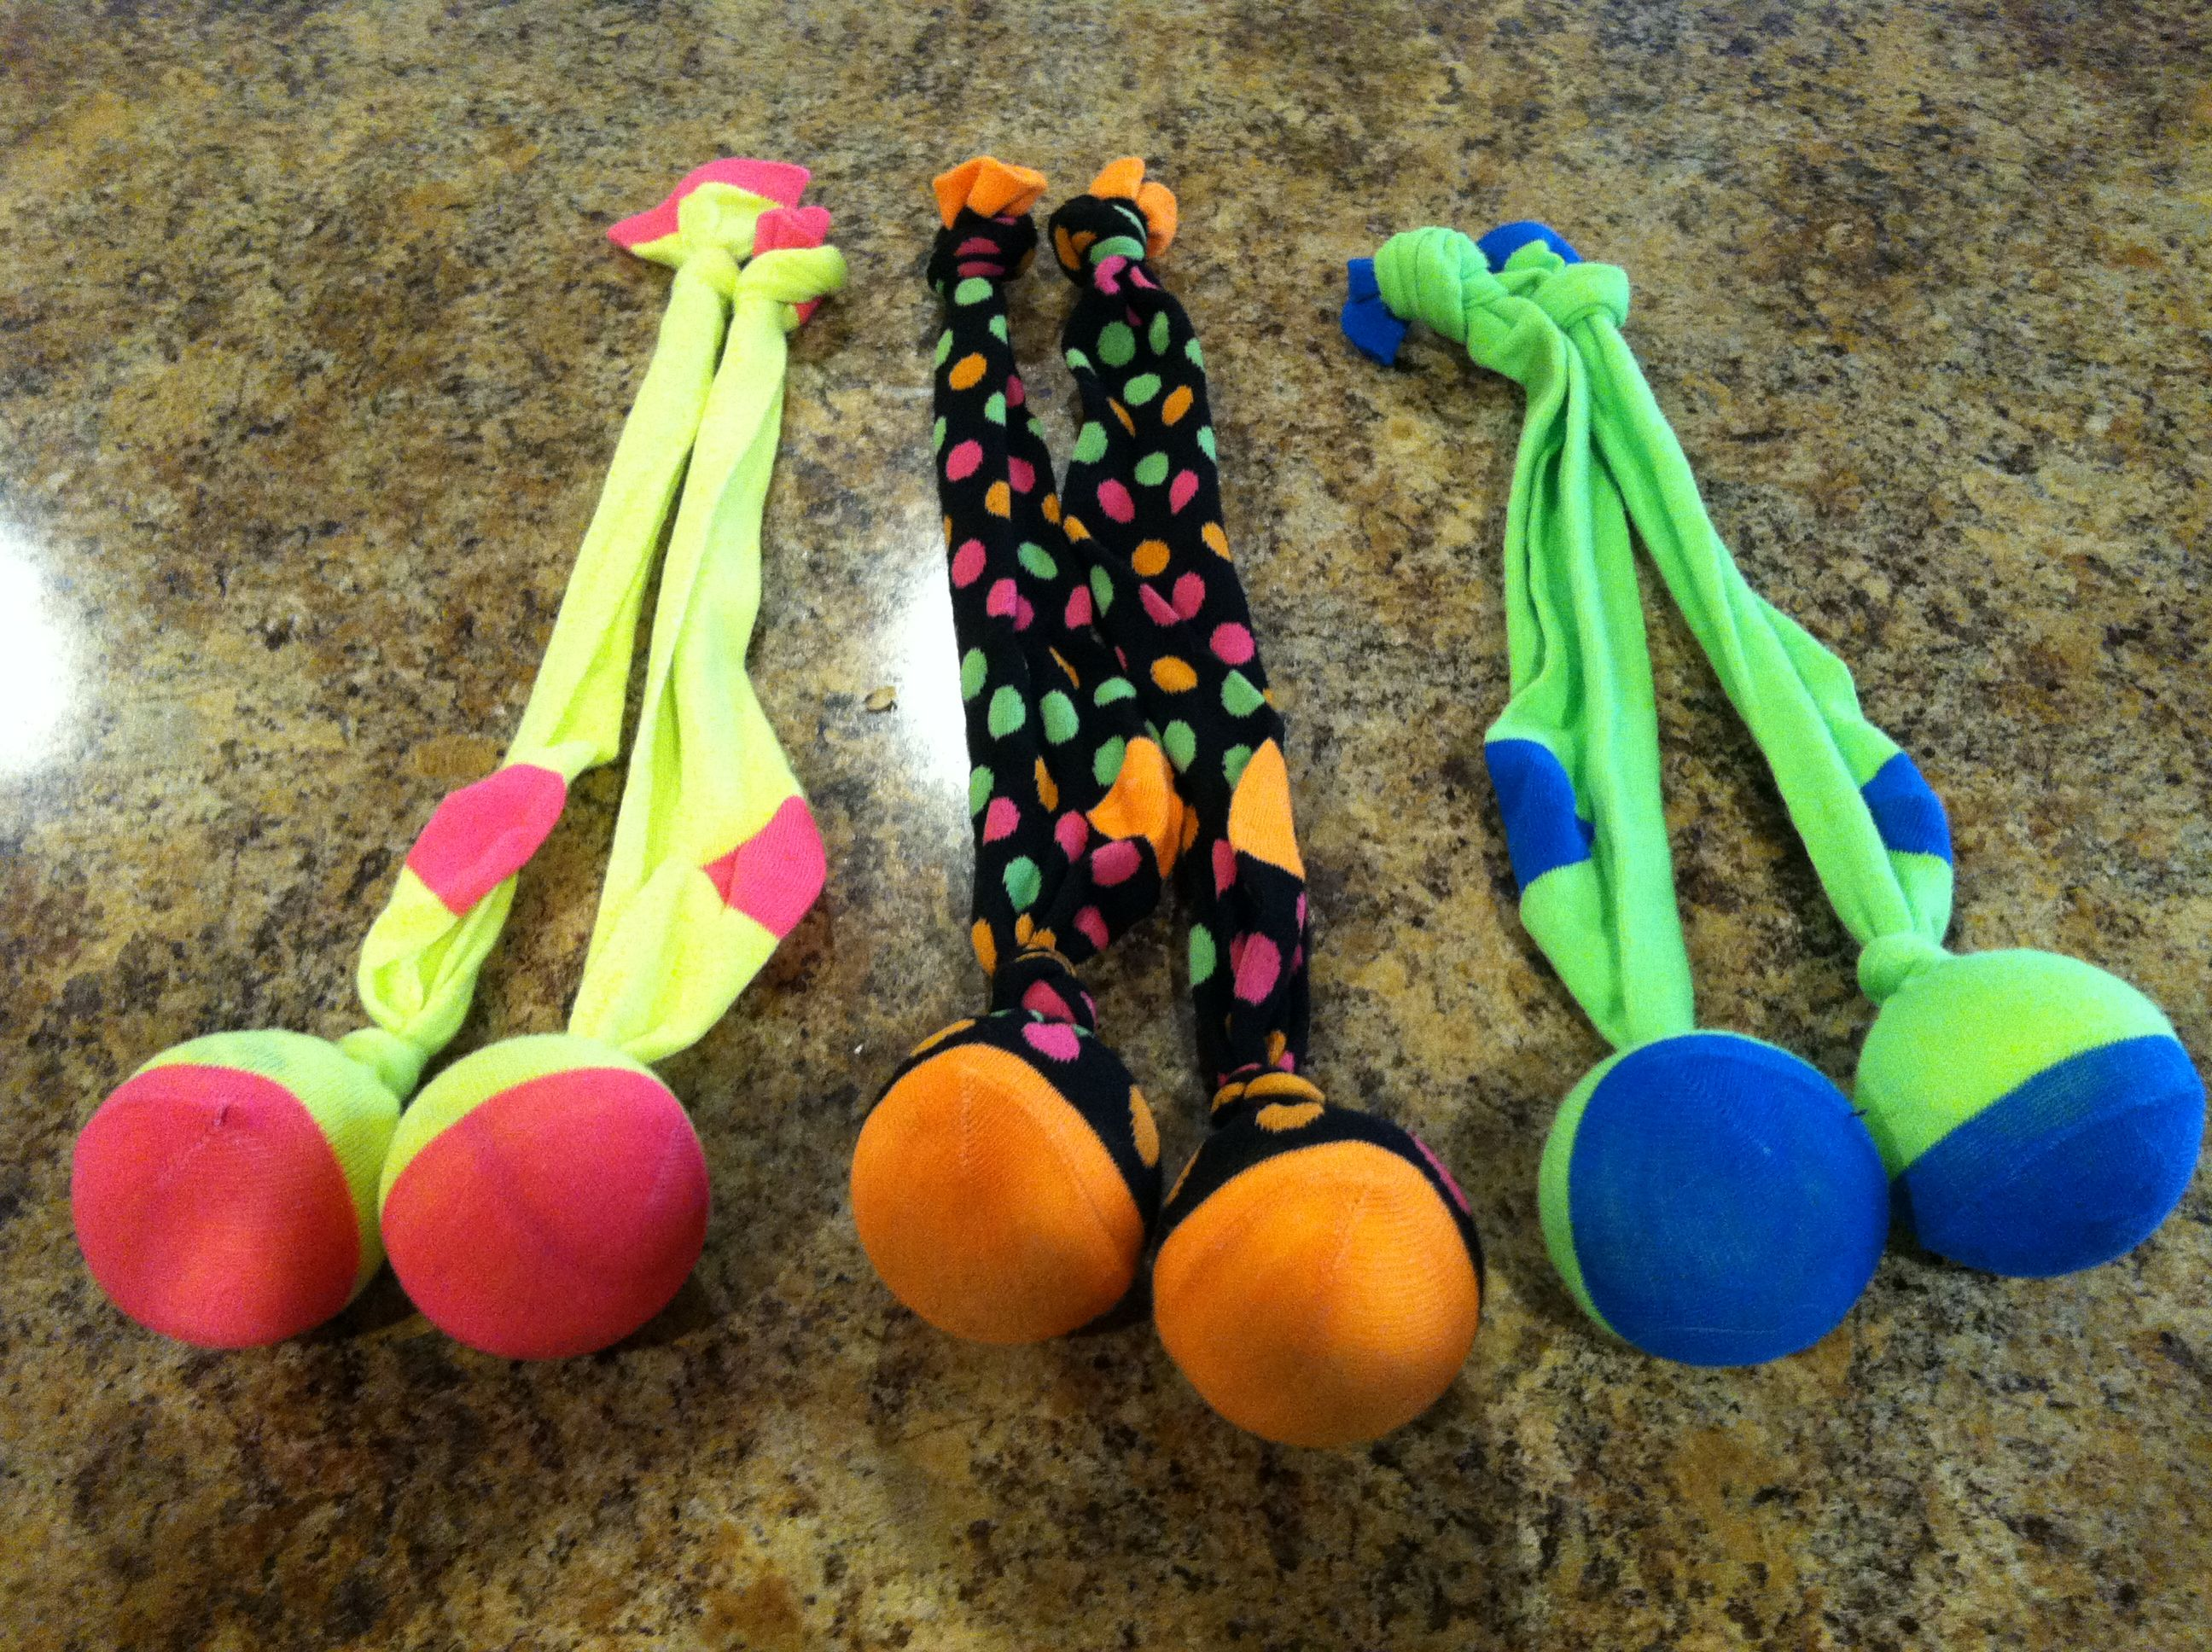 diy poi socks our home made practice poi cheap knee high socks with